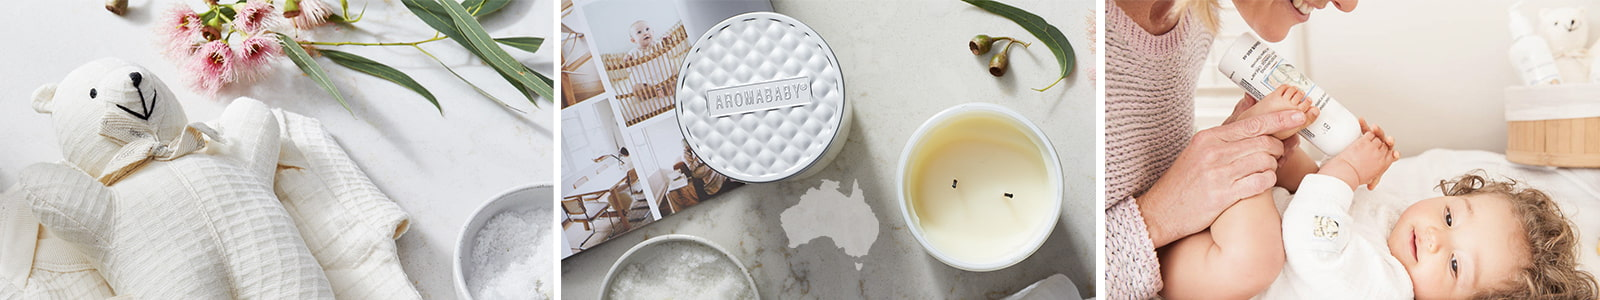 AROMABABY's banner